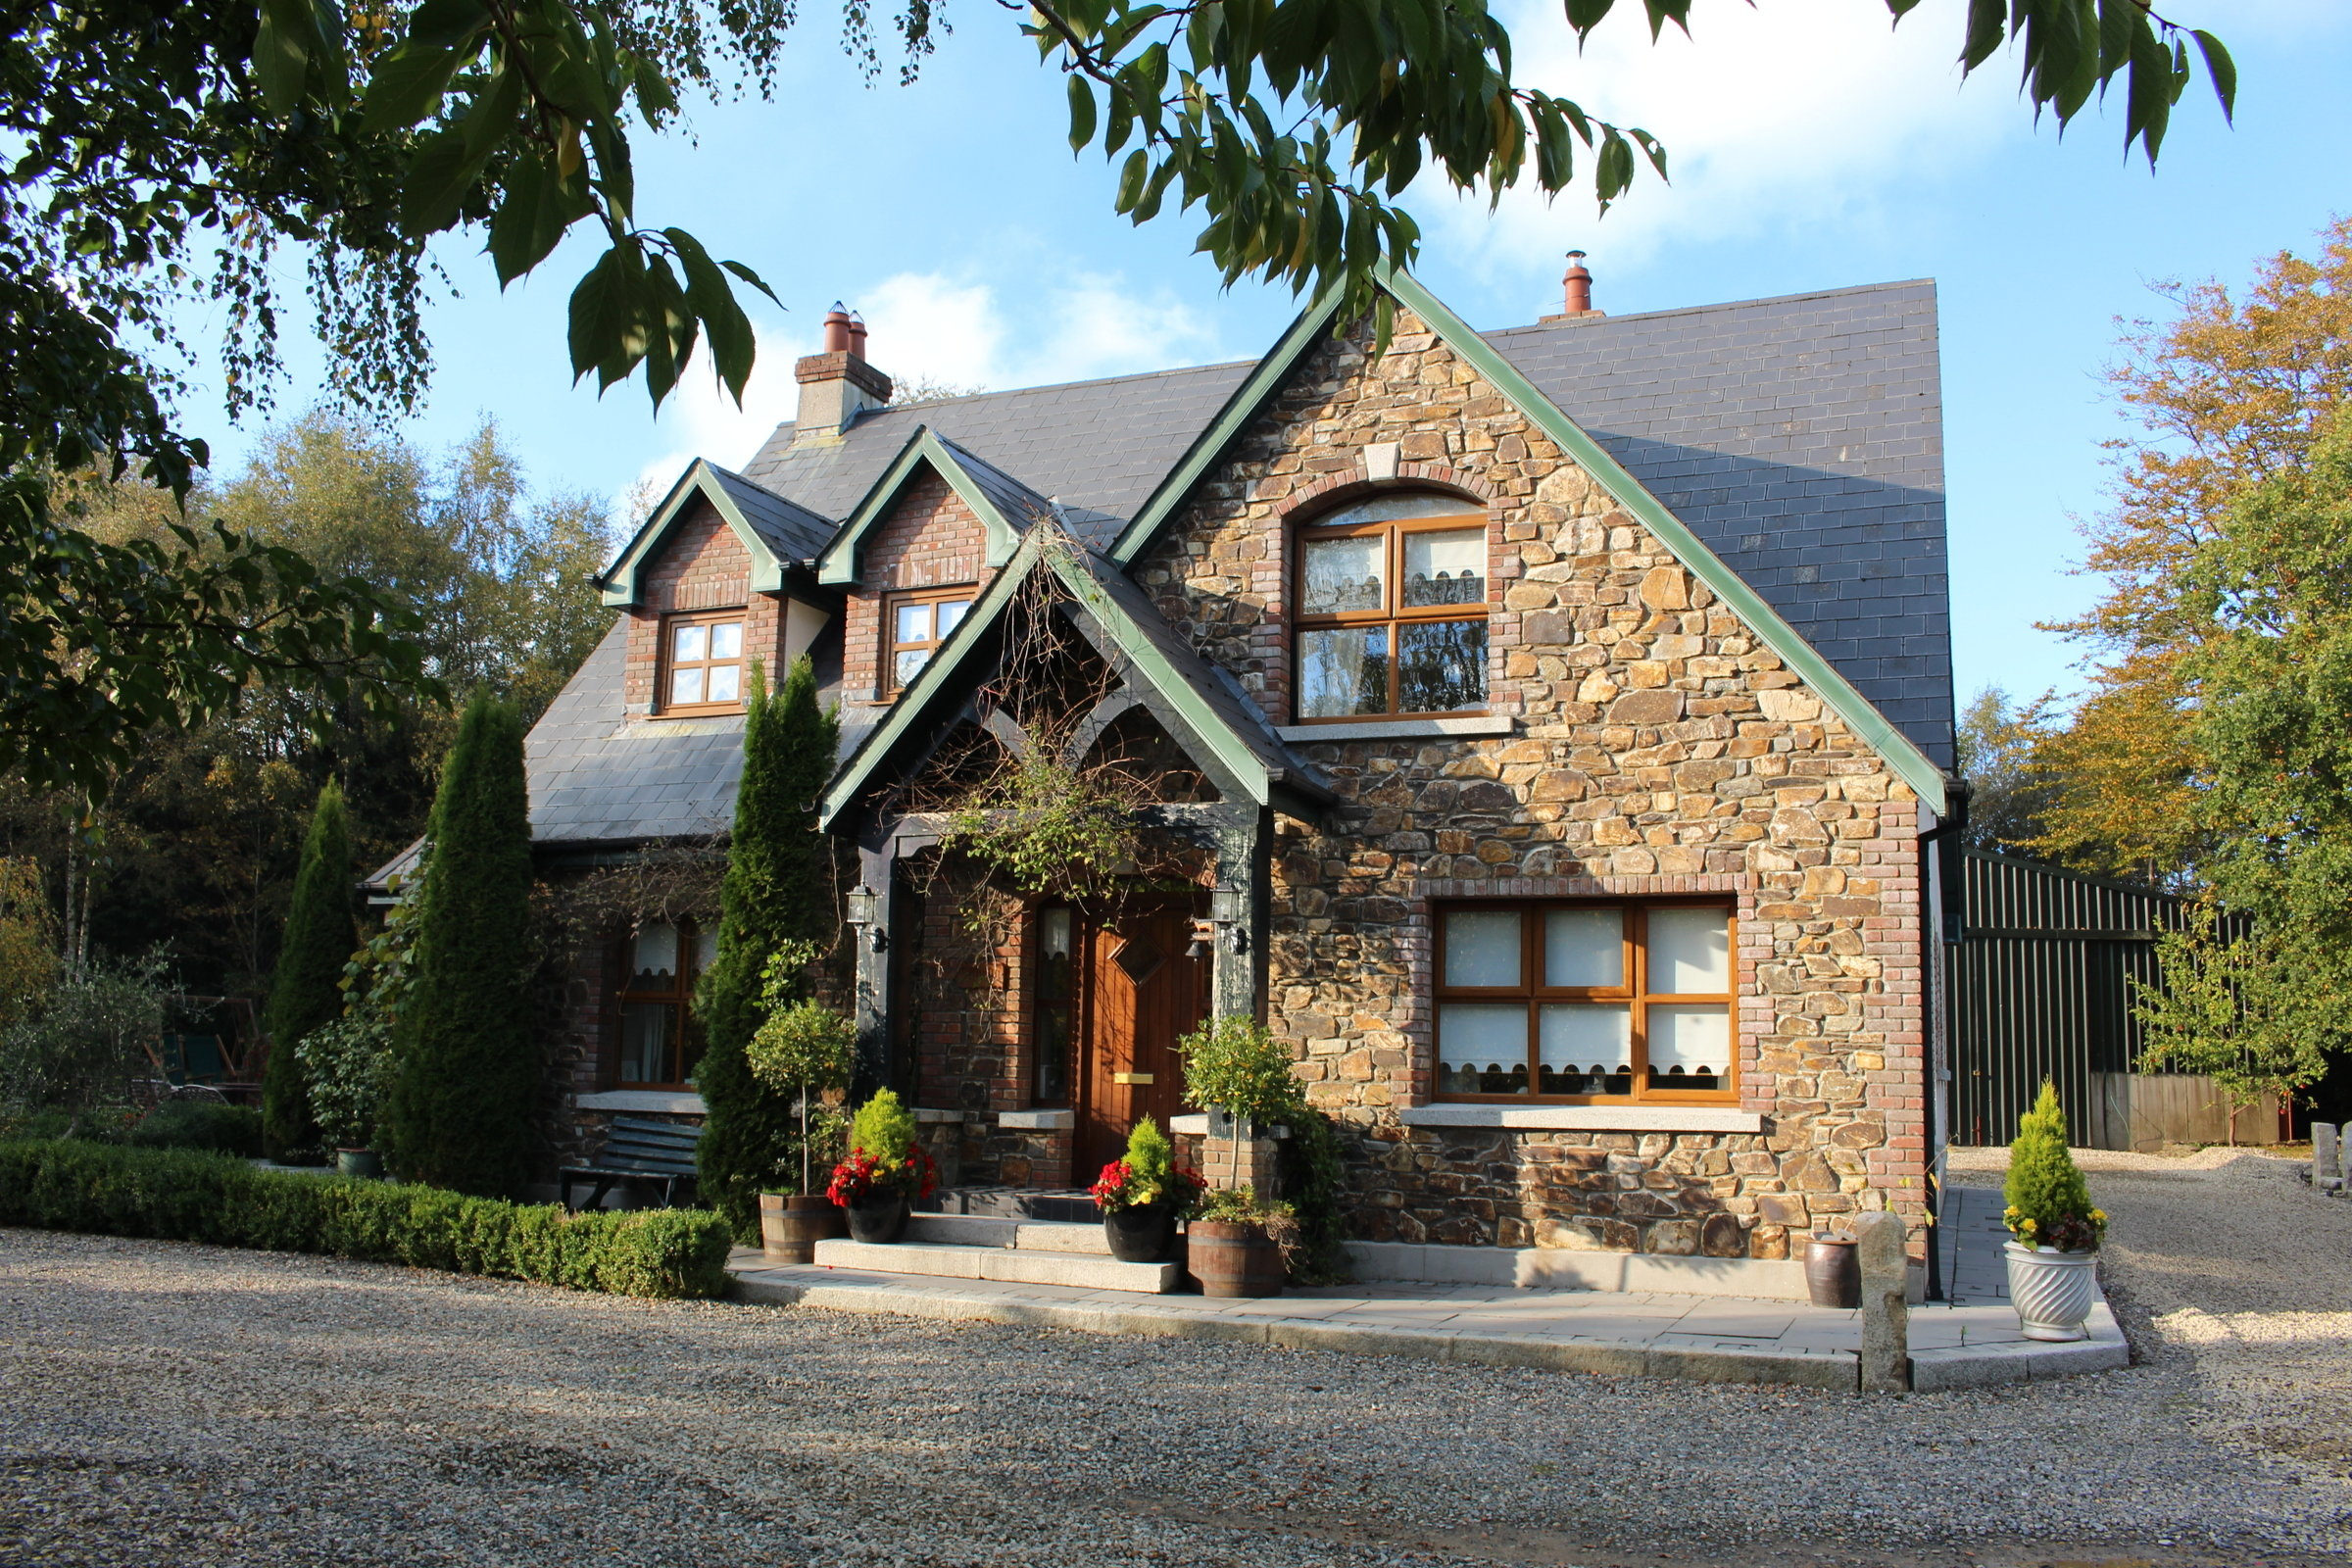 Property of the Week: Stunning 'Bethany', Barnlands, Gorey